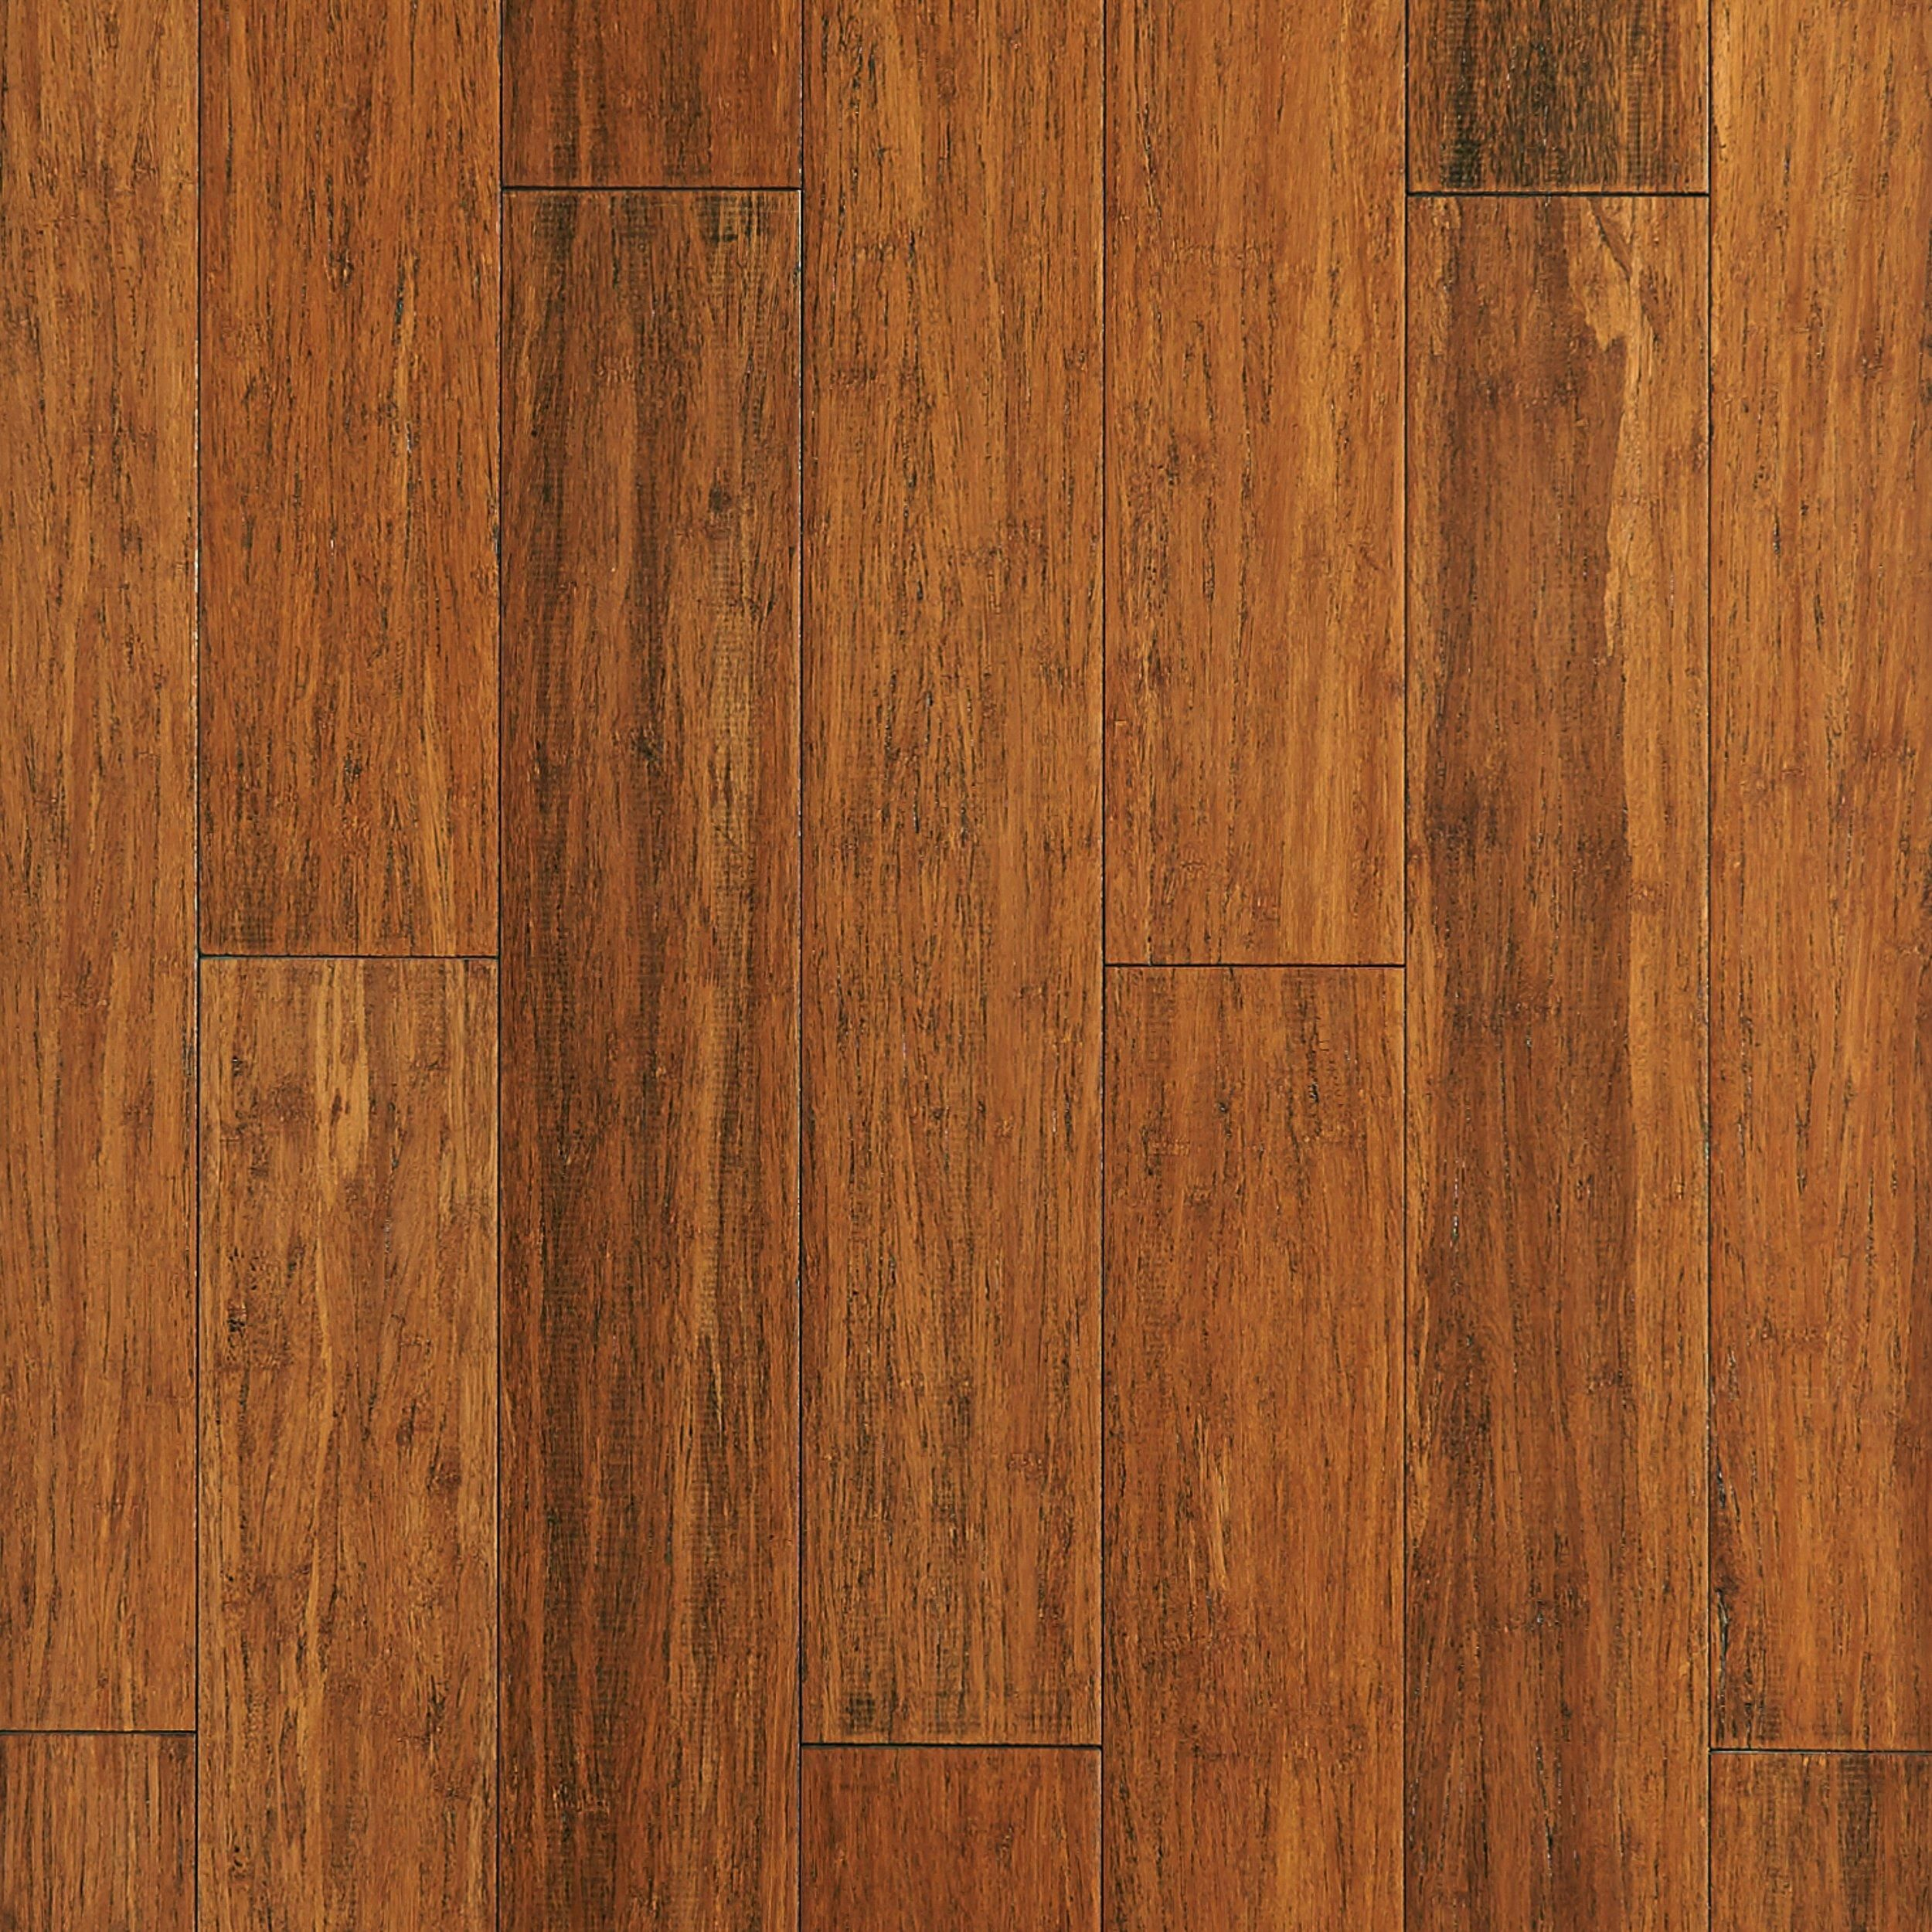 Eco Forest Black Beach Wire Brushed Locking Solid Stranded Bamboo Floor Decor Flooring Bamboo Flooring Hardwood Options